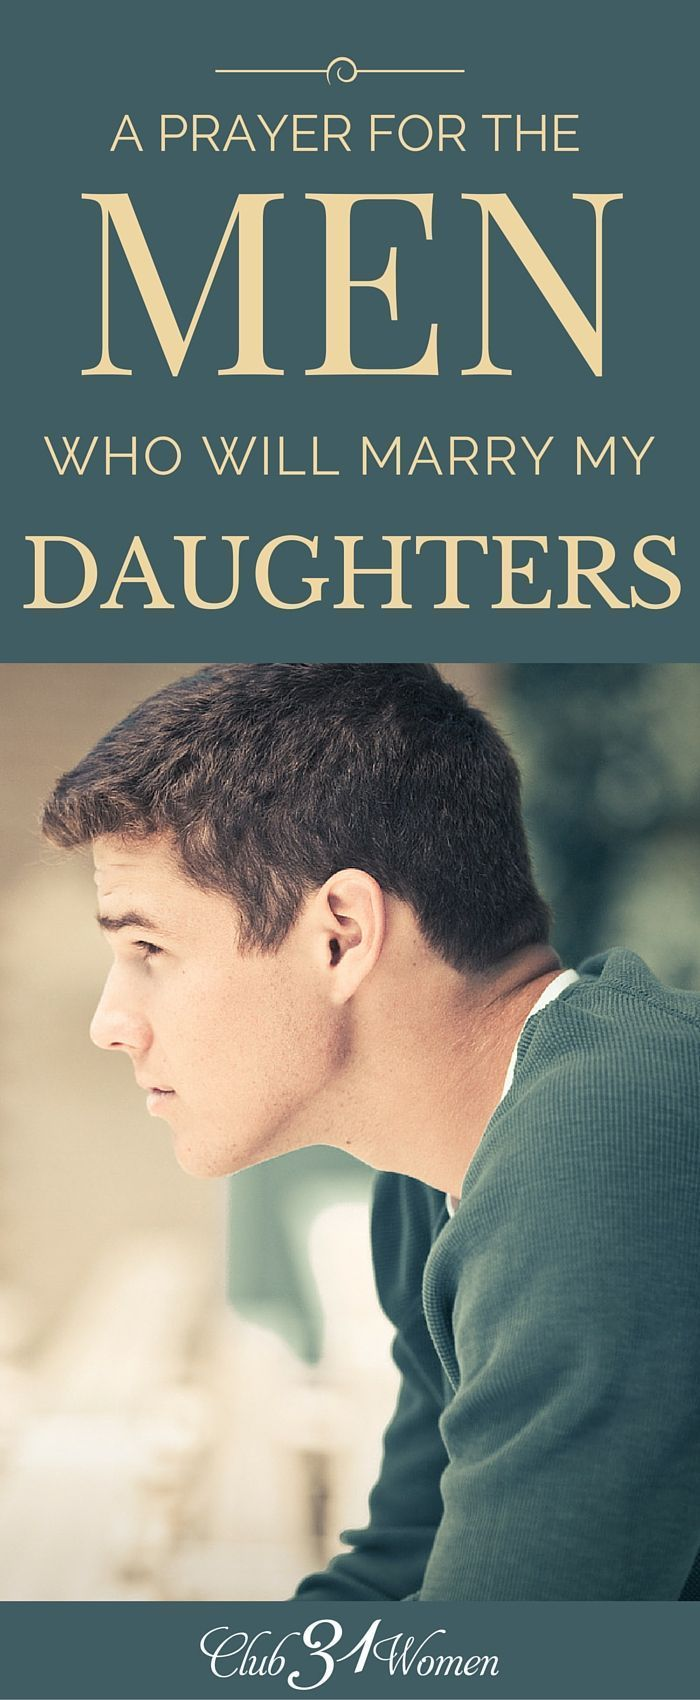 A Prayer For The Men That Will Marry Our Daughters